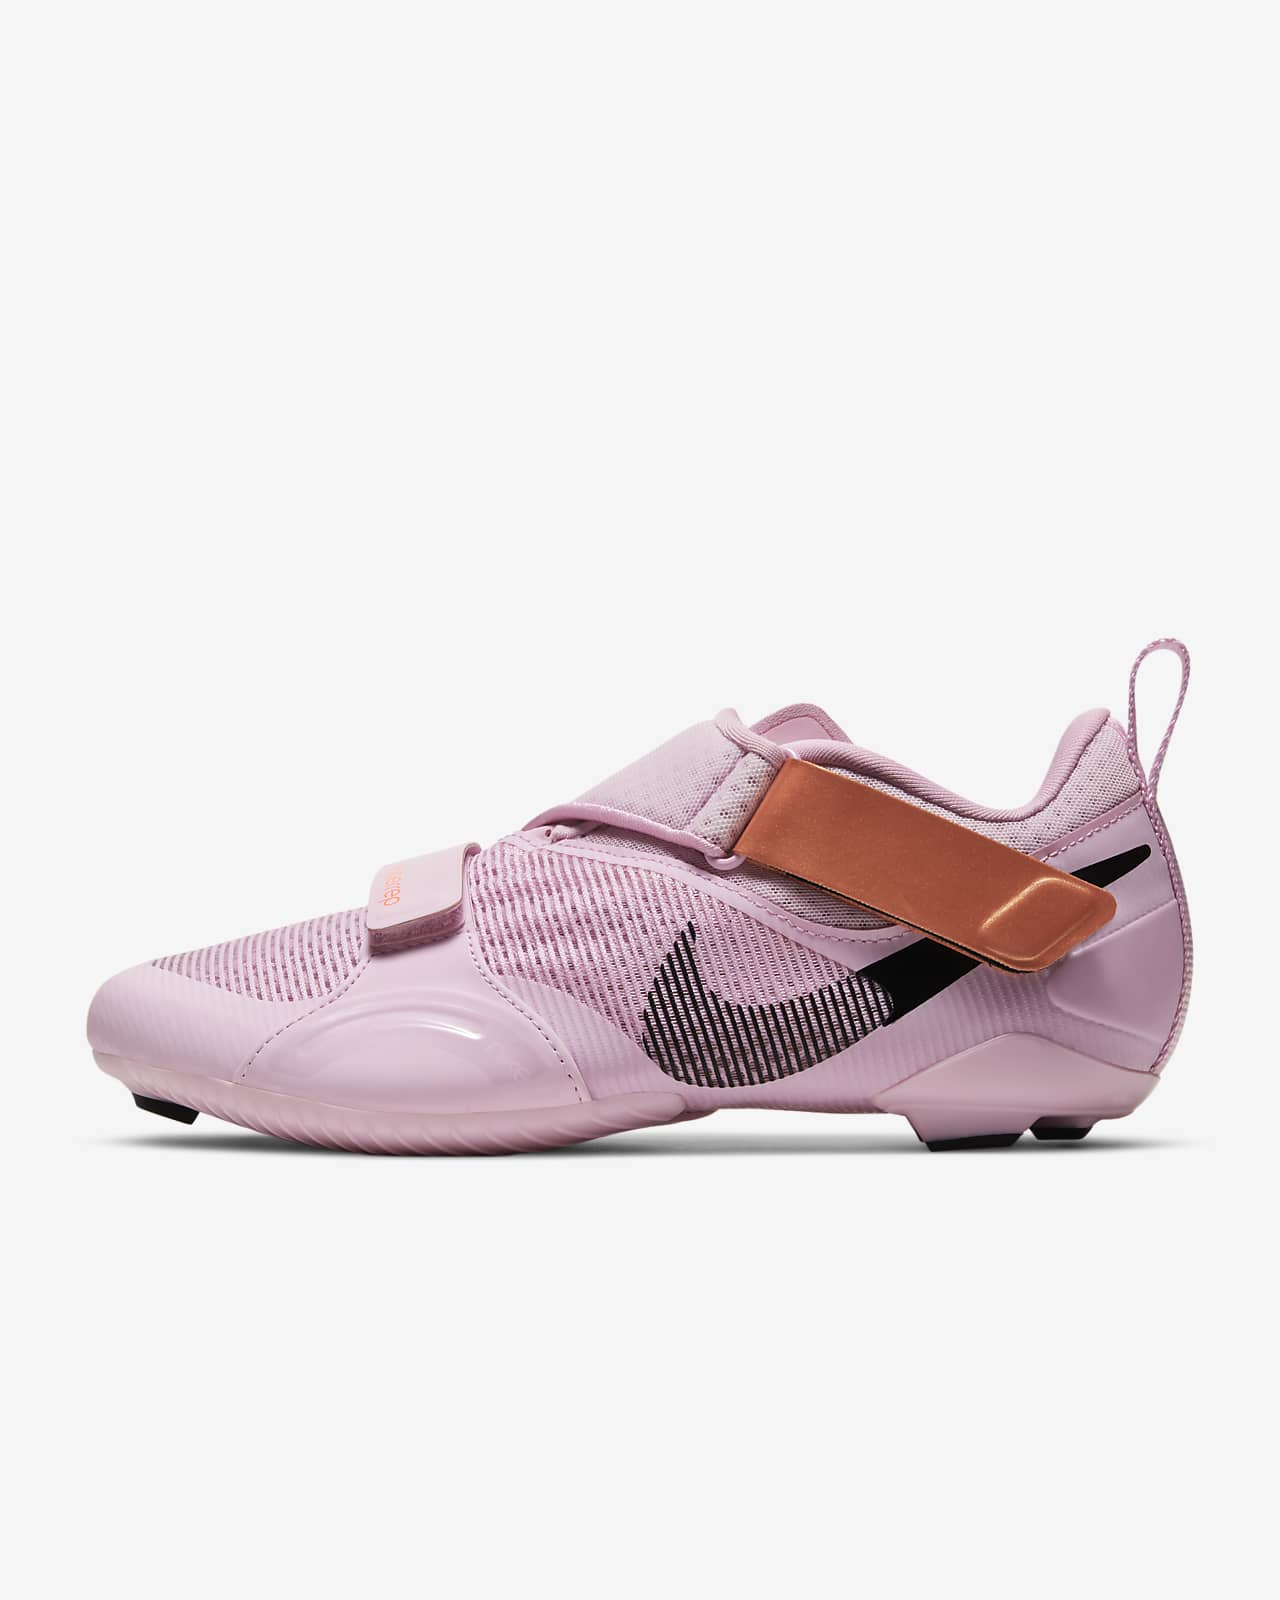 Nike SuperRep Cycle Women's Indoor Cycling Shoe